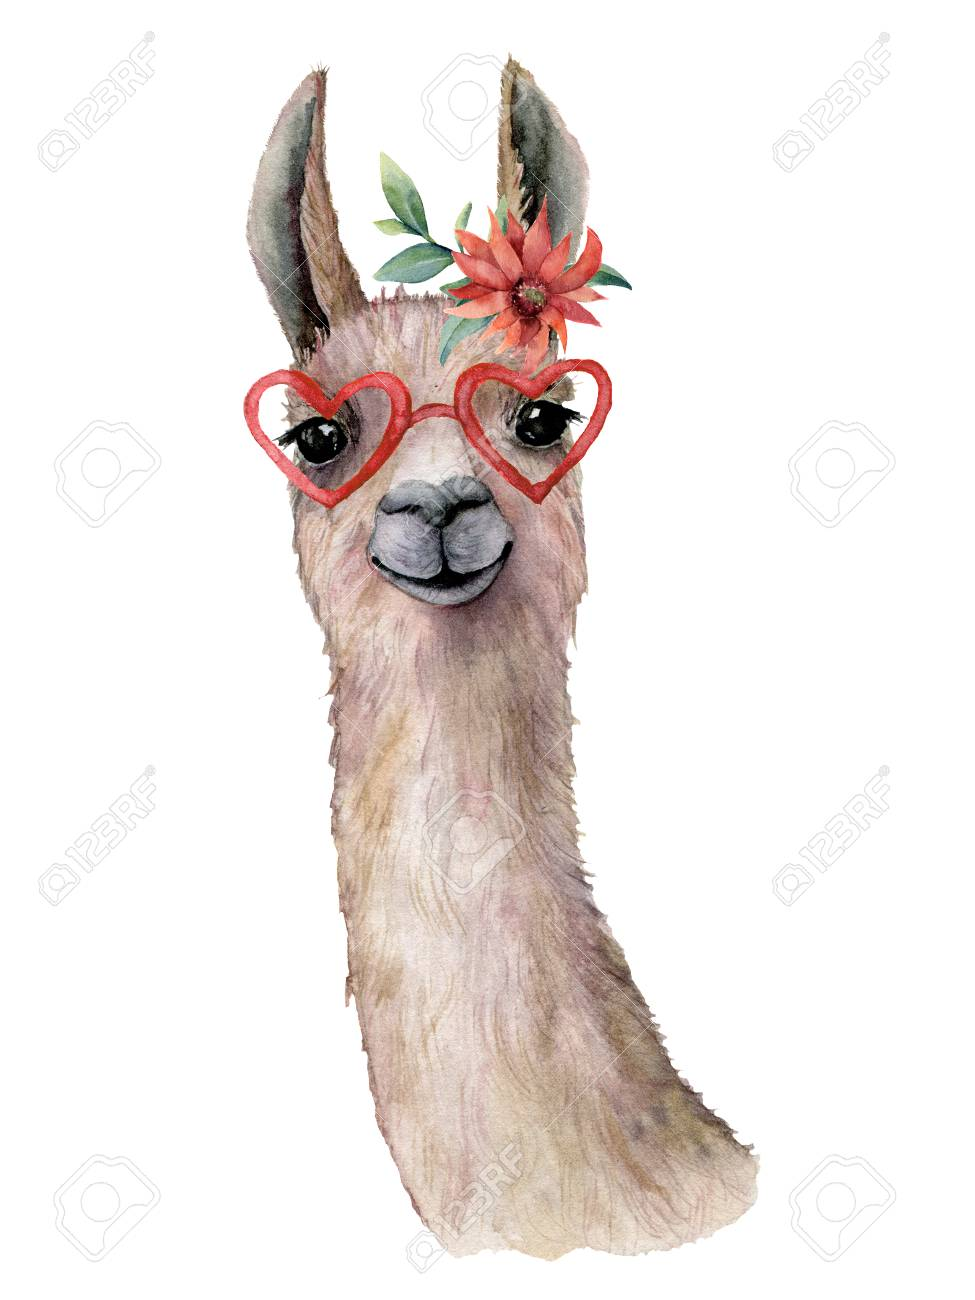 Watercolor card with llama, flower and sunglasses. Hand painted beautiful illustration with animal, red flower and sunglasses isolated on white background. For design, print, fabric or background. - 116174936